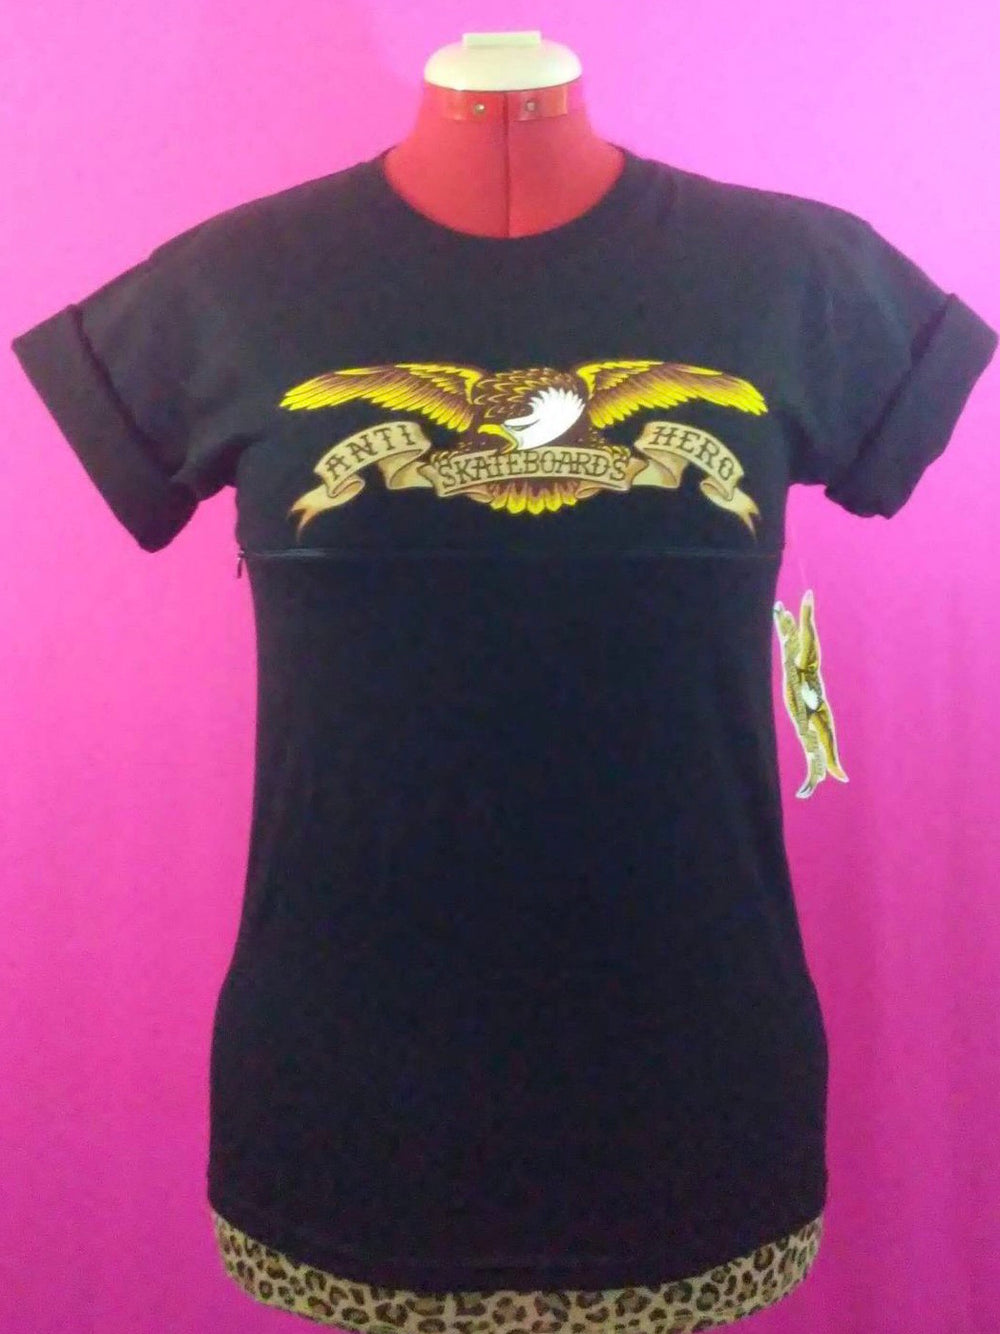 Black AntiHero shirt with eagle design in front of pink background. The shirt has been customized for breastfeeding with a zipper across the front.